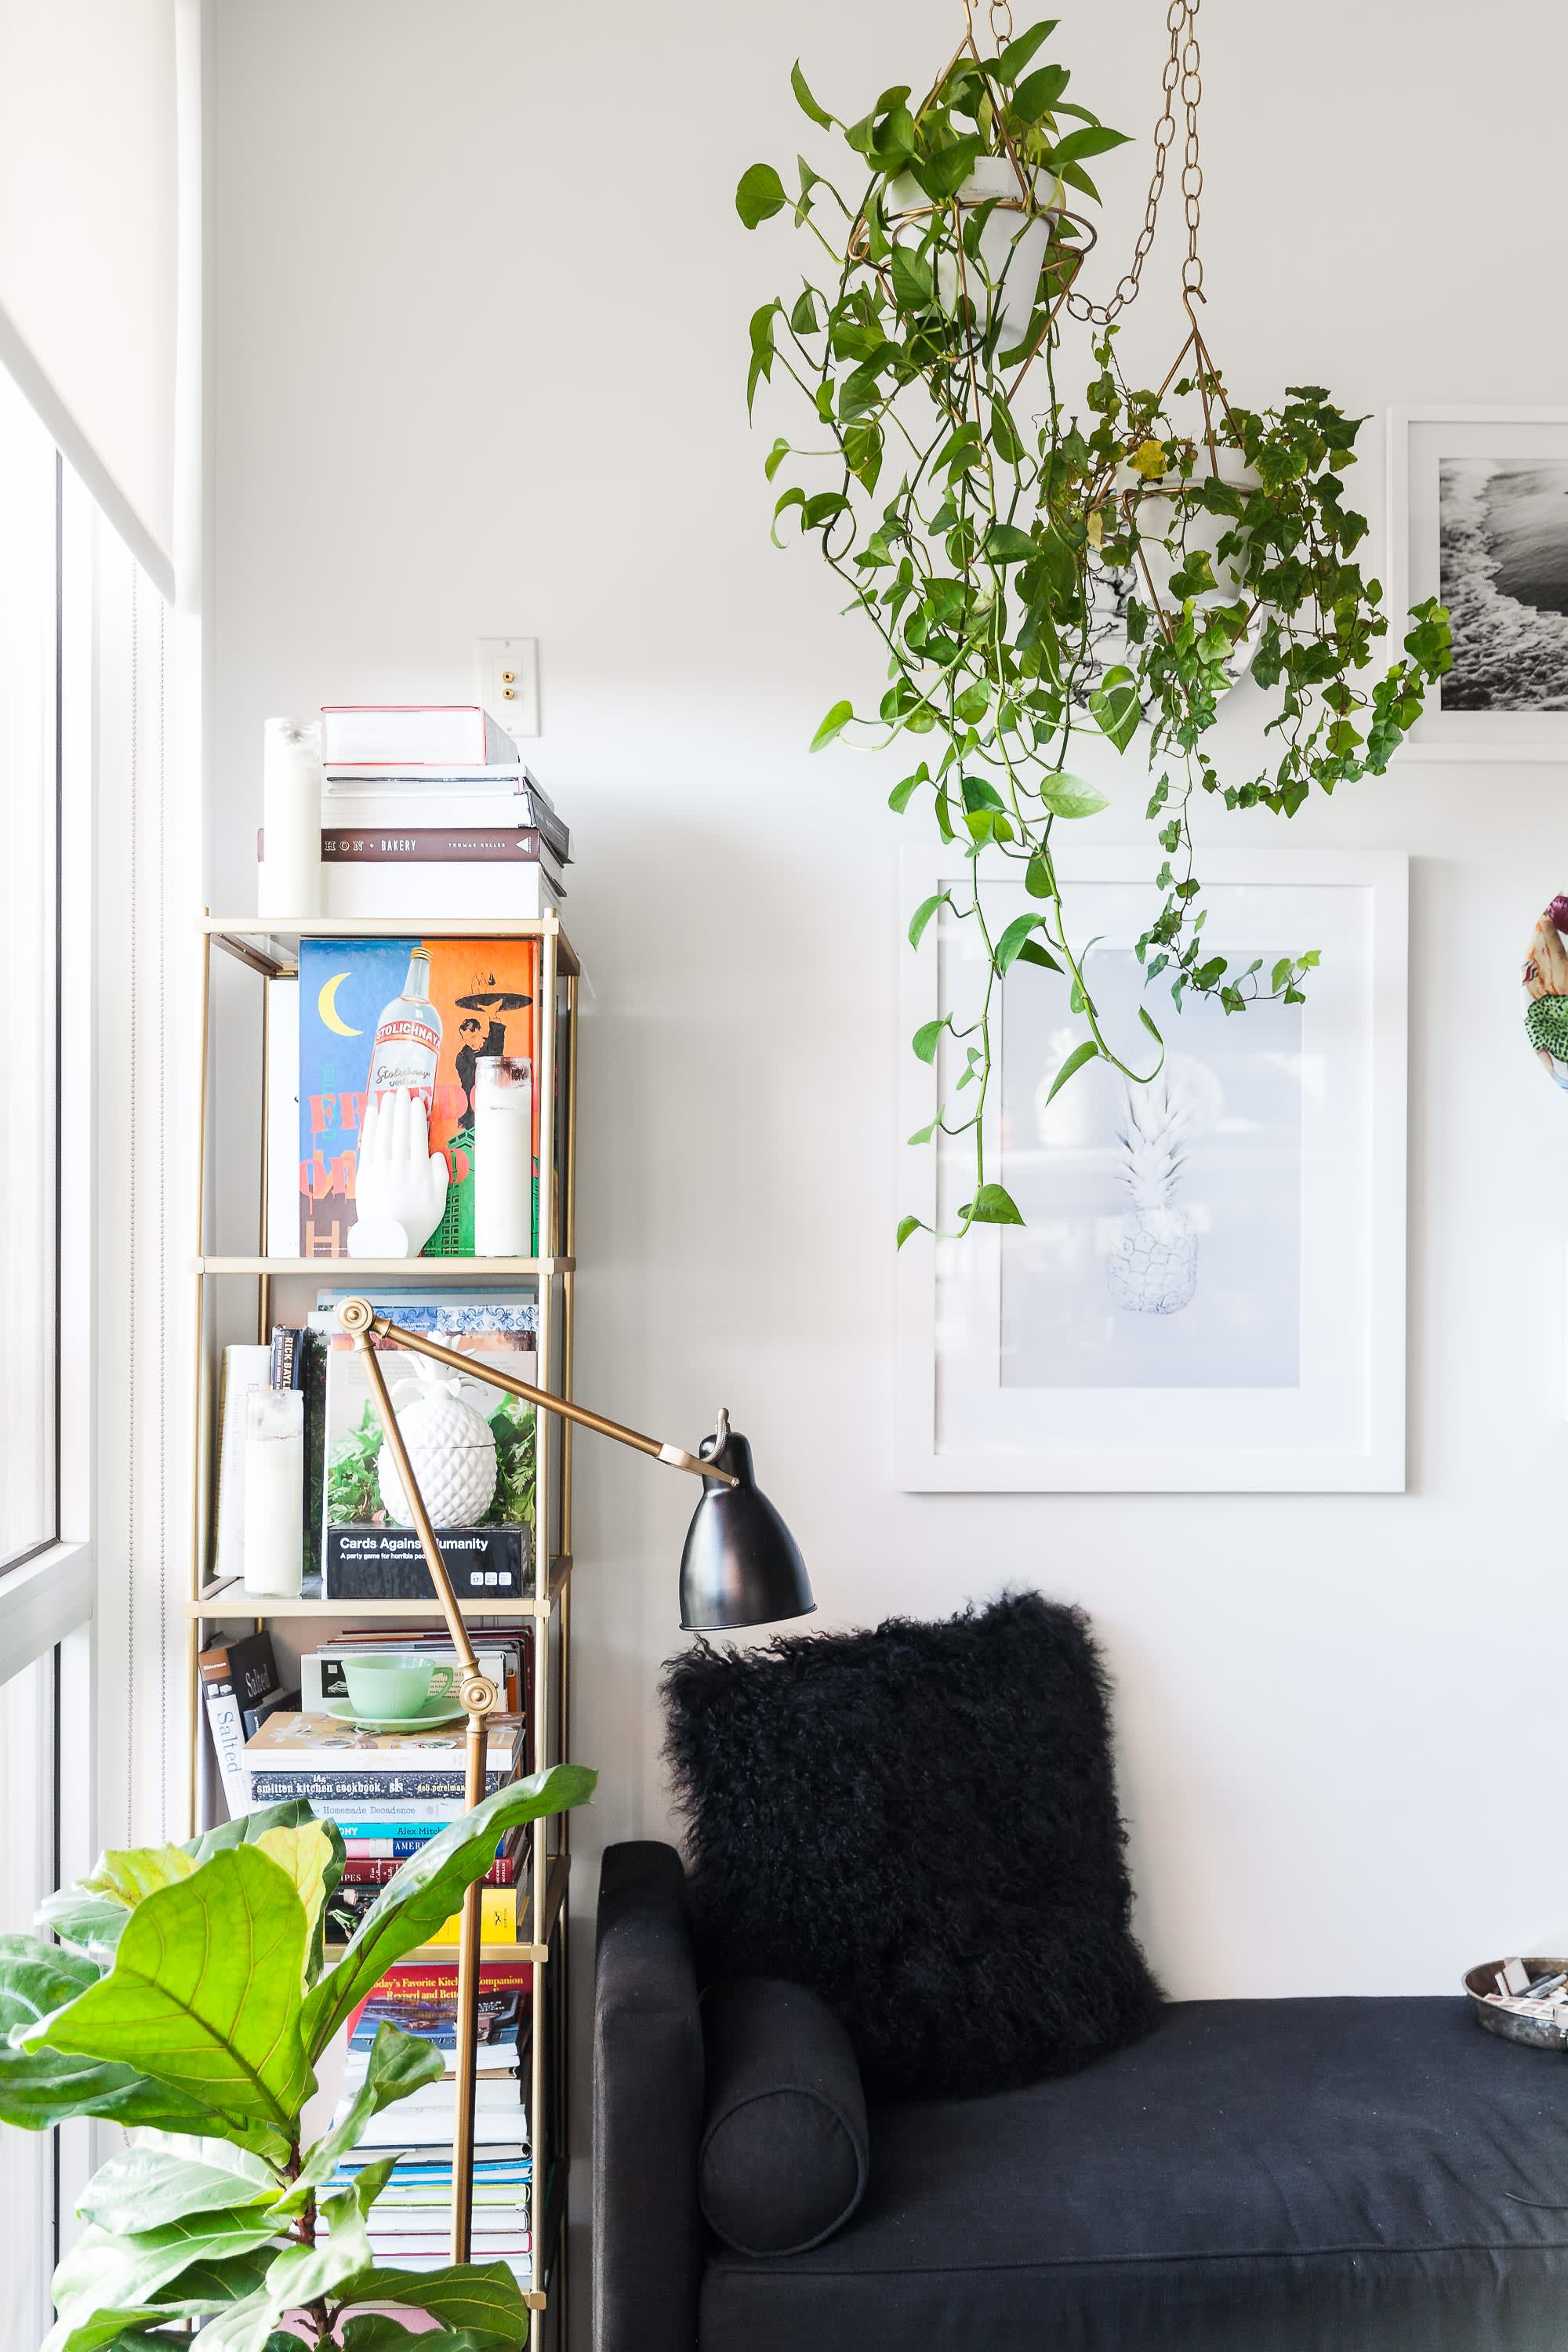 The Best Indoor Vining Plants | Apartment Therapy Vining House Plants on colorful house plants, unusual house plants, green house plants, indoor plants, caring for house plants, fruit non edible plants, water house plants, rare house plants, minnesota house plants, climbing house plants, trailing house plants, dumb cane house plants, potted house plants, viney house plants, tropical house plants, best house plants, watering house plants, japanese house plants, small house plants, tall house plants,